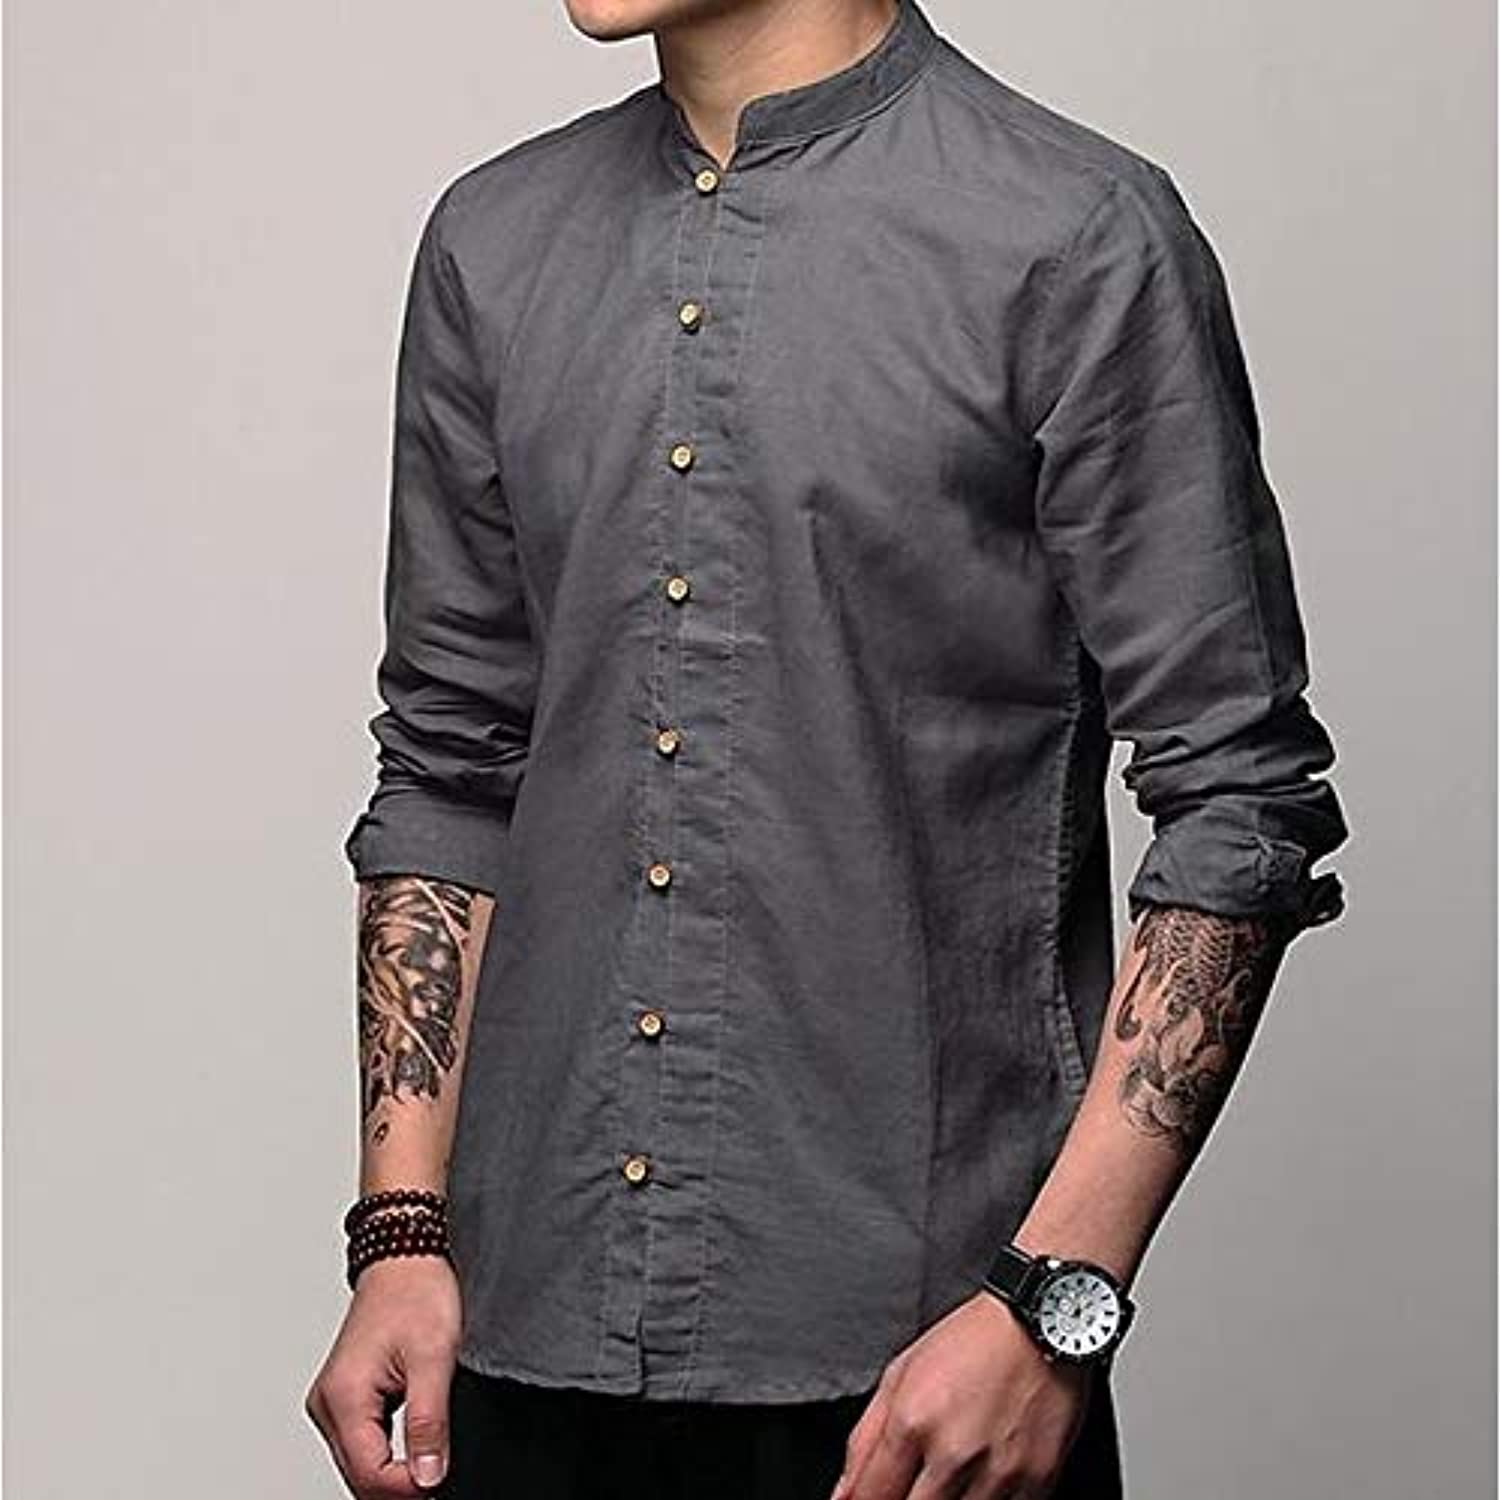 Men's Cotton Linen Shirt  Solid colord Short Sleeve